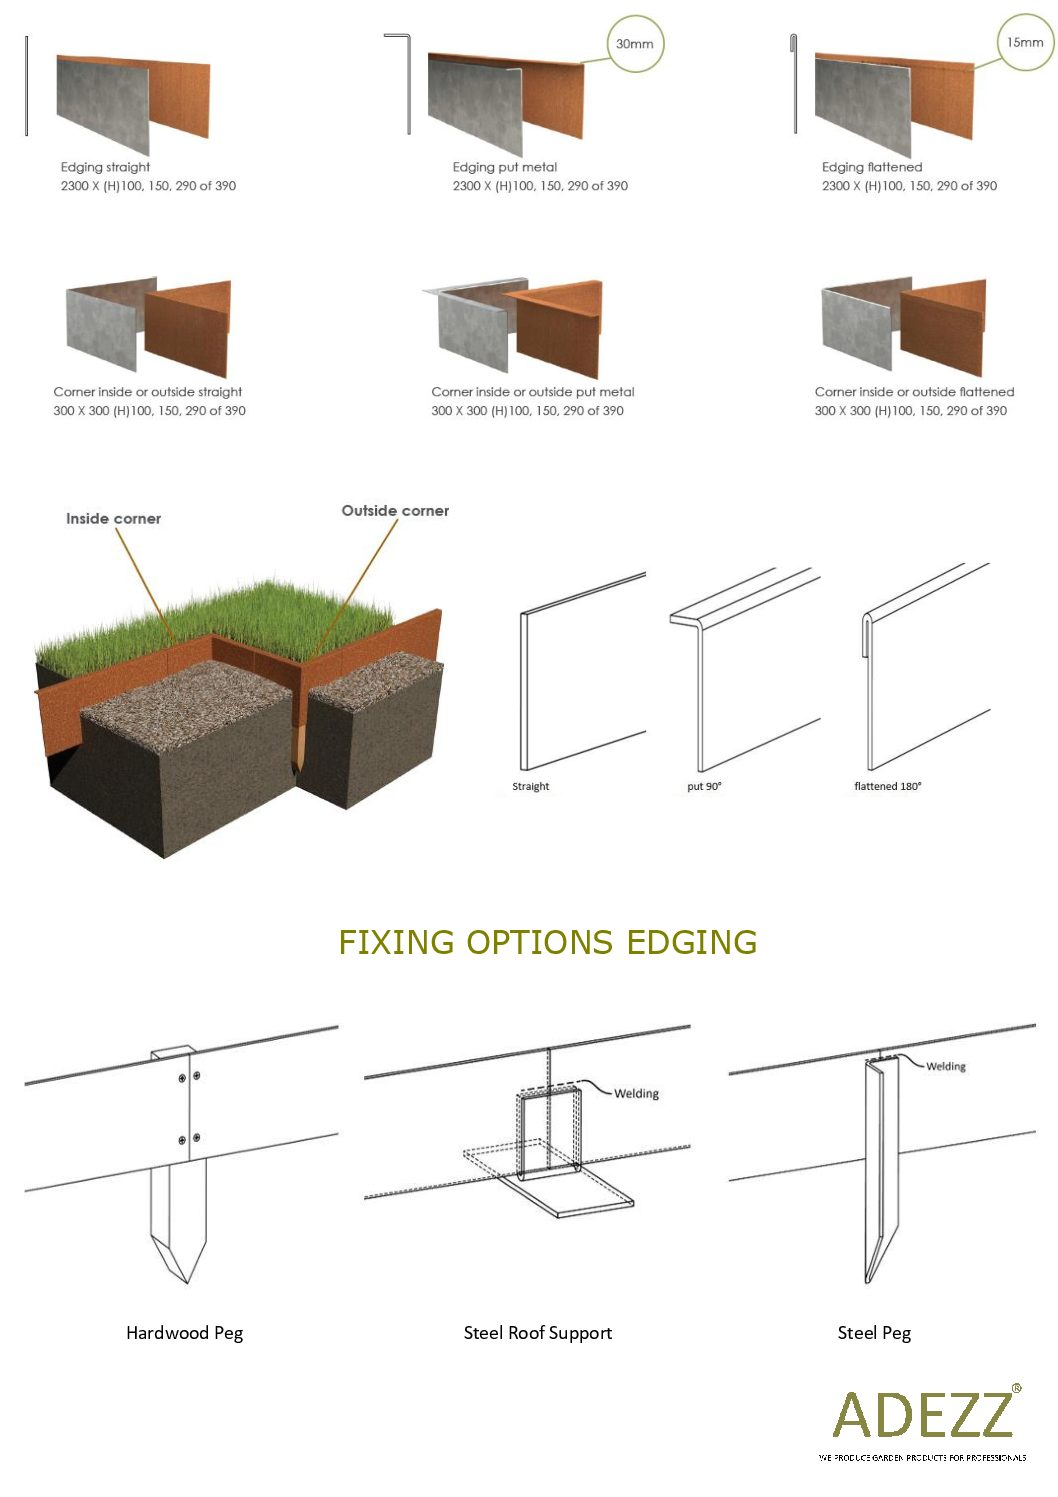 Corten Steel Lipped Garden Edging By